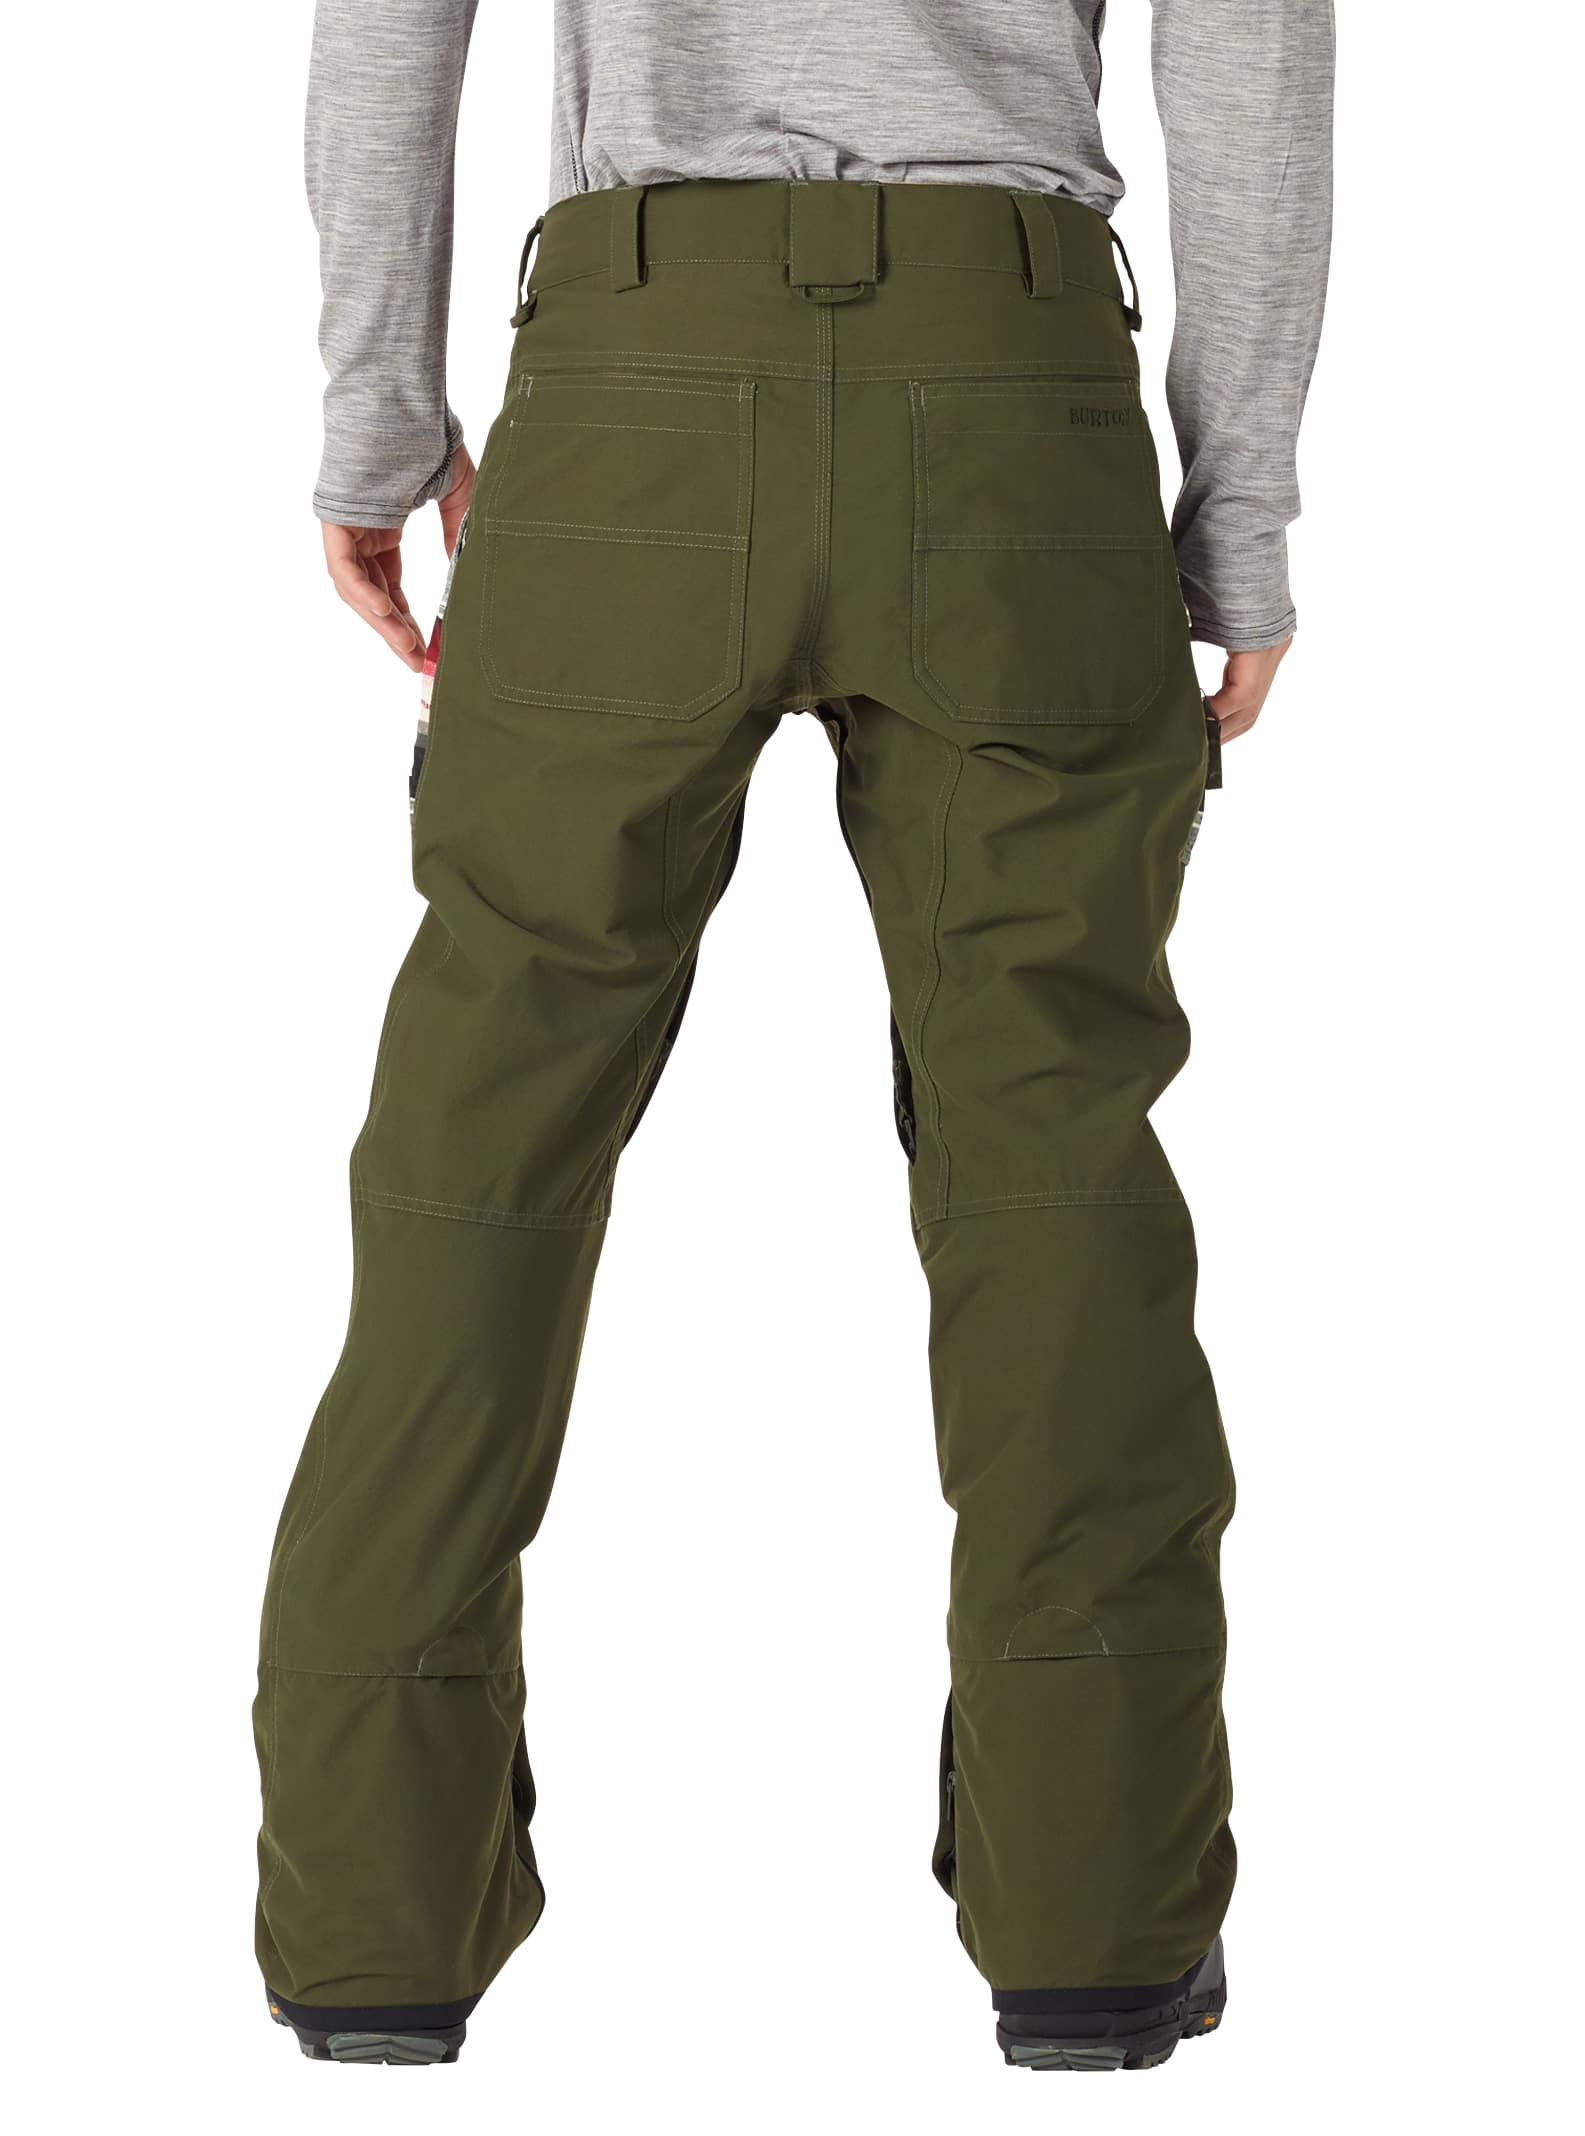 Affordable Buy Cheap Purchase tailored fitted trousers - Green Pence Outlet Order Release Dates Cheap Price XnoZUor6